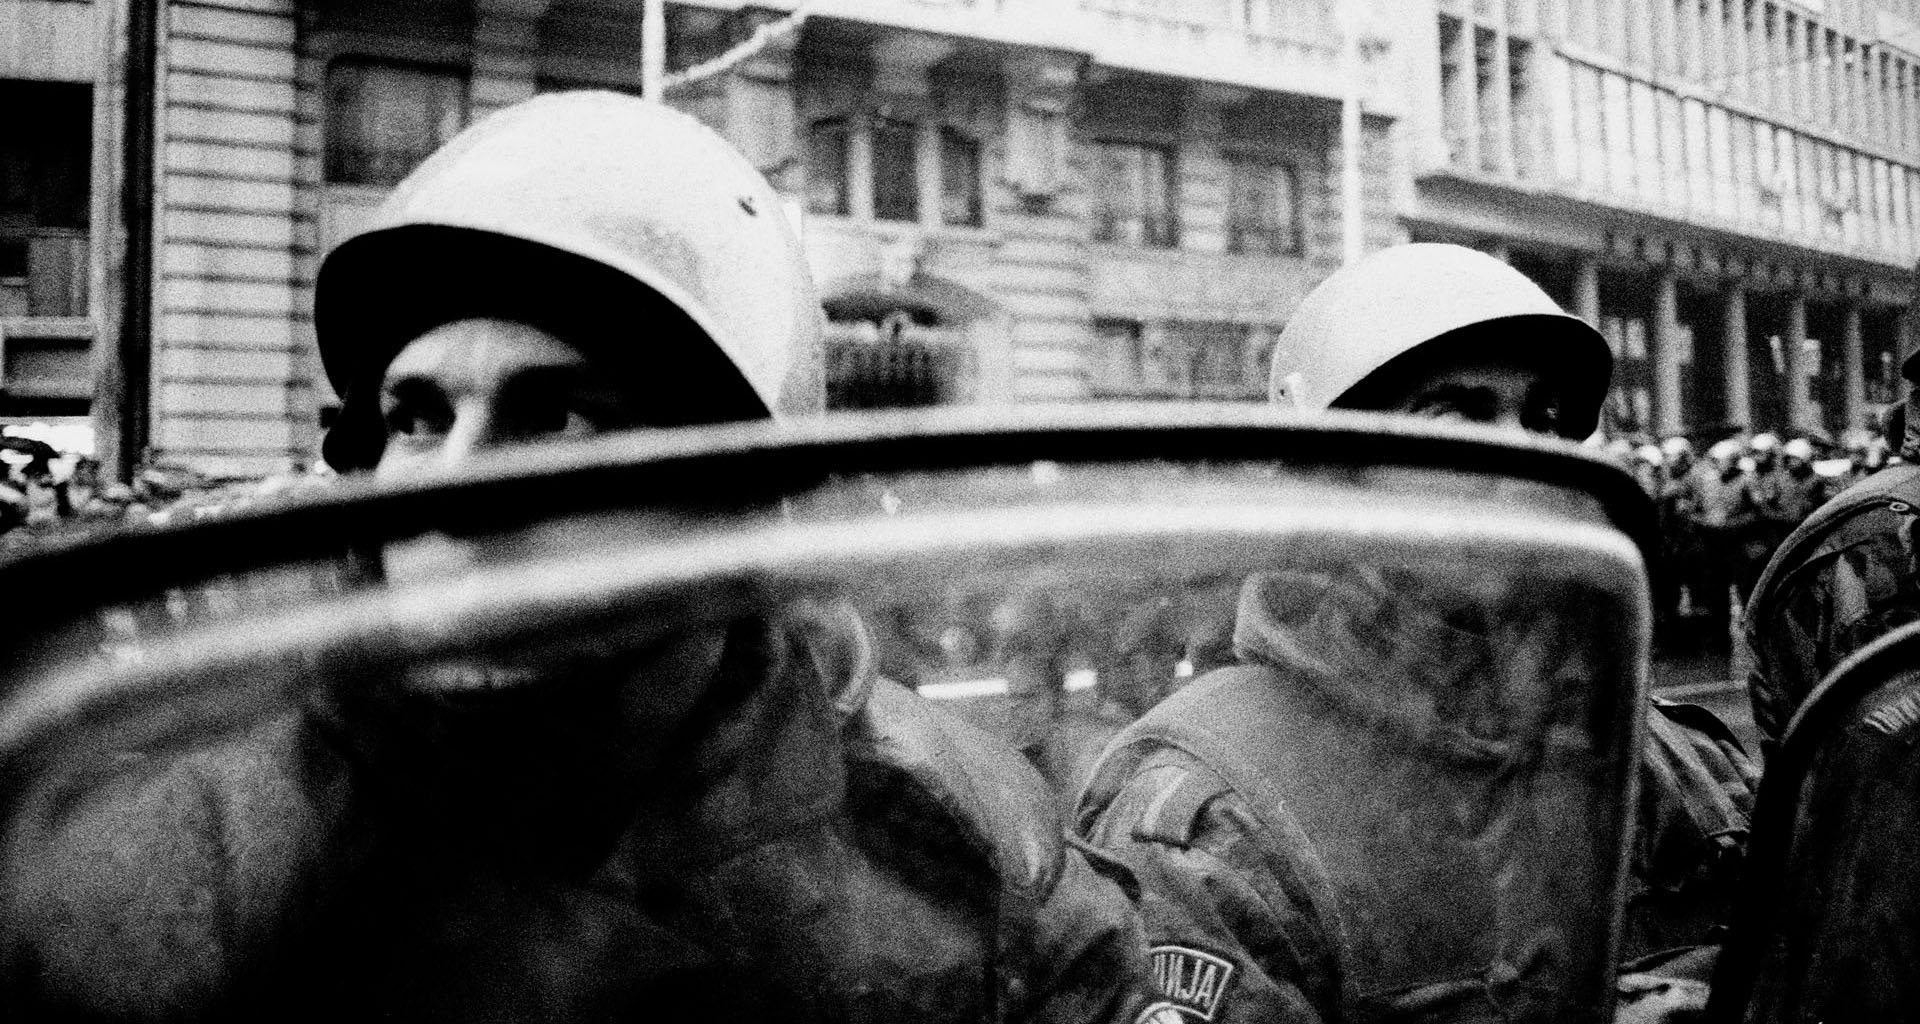 Boogie: the photographer who captured Belgrade's underbelly amid Serbia's troubled 90s